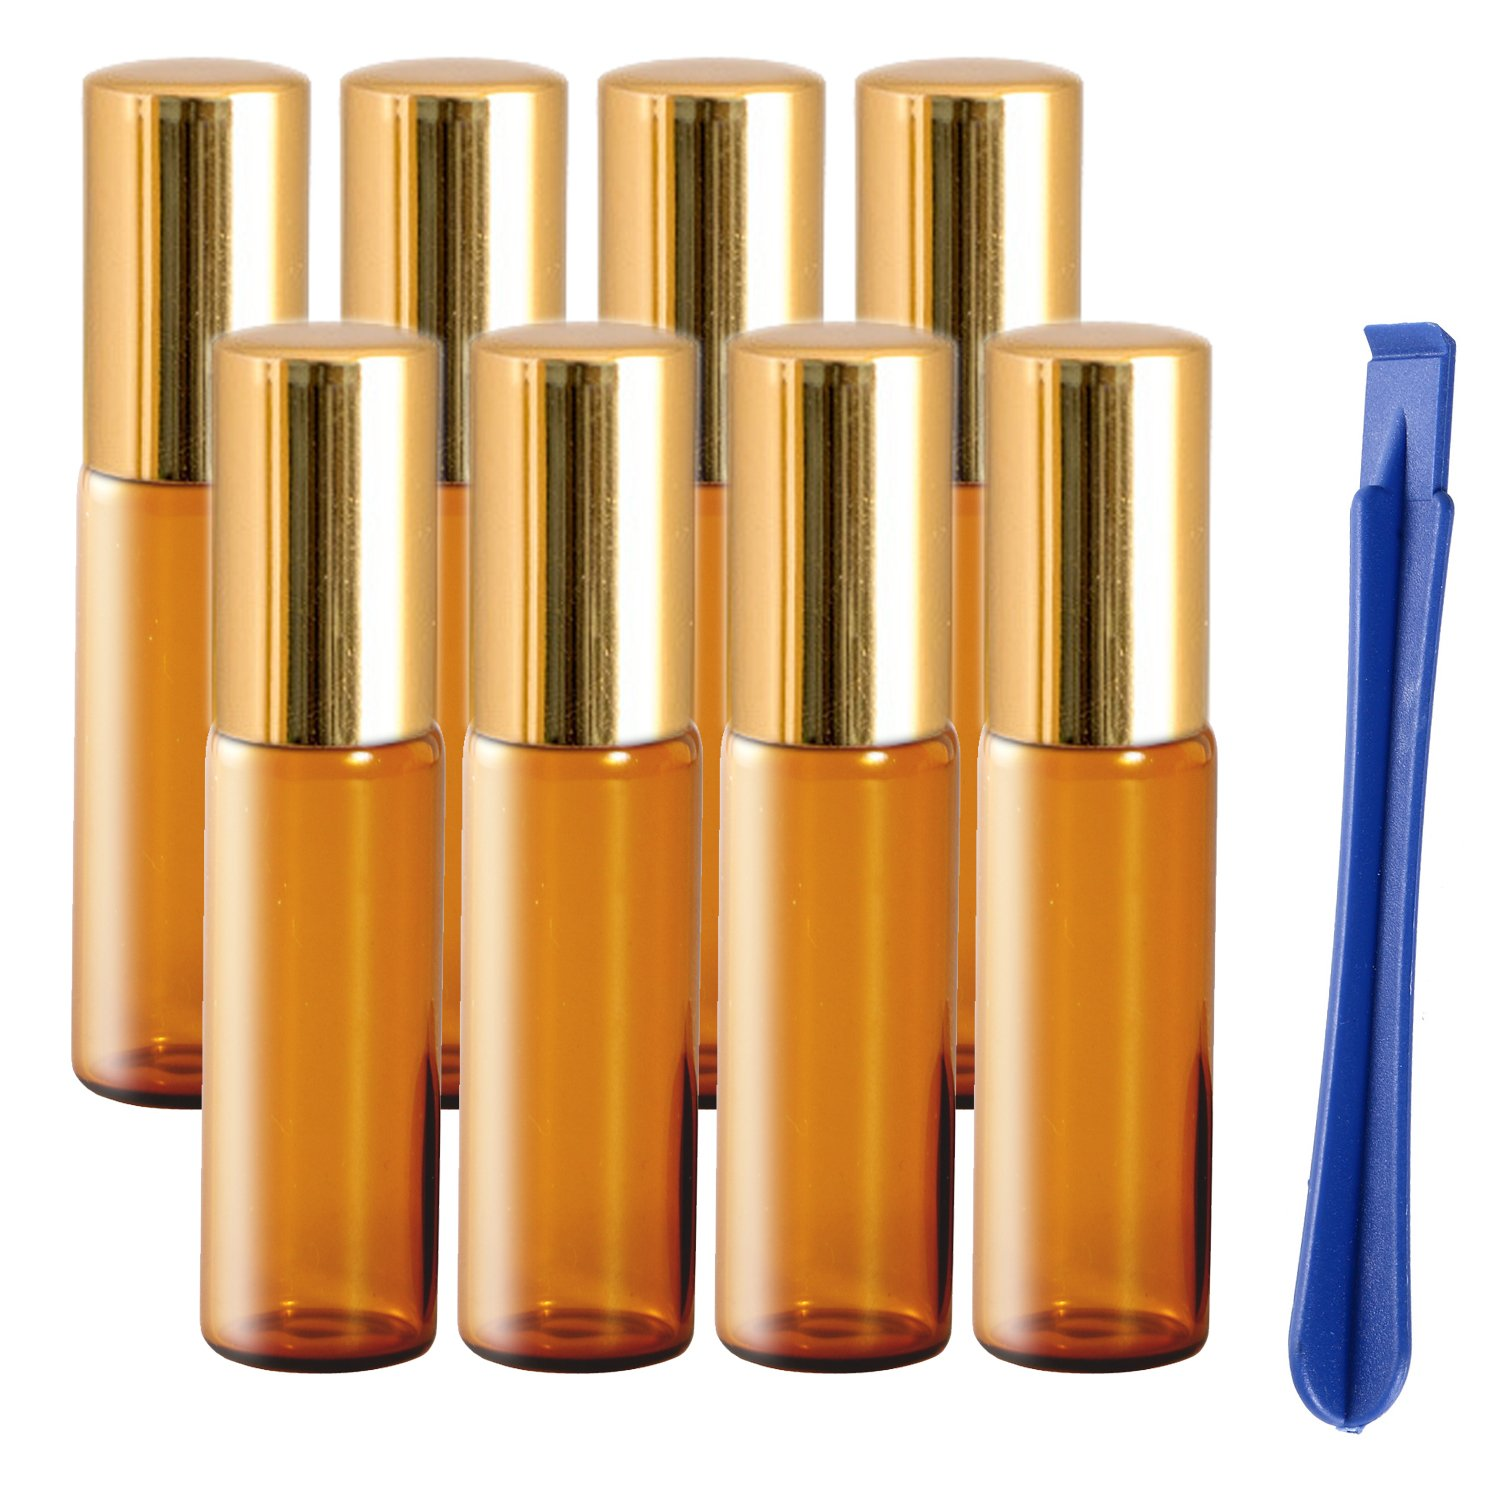 8Pcs, 5ml Glass Essential Oils Roller Bottles with Stainless Steel Roller Ball - Refillable Roll on Bottles with Lid Opener Pry Tool, Great for Aromatherapy, Perfumes and Lip Balms by JamHooDirect